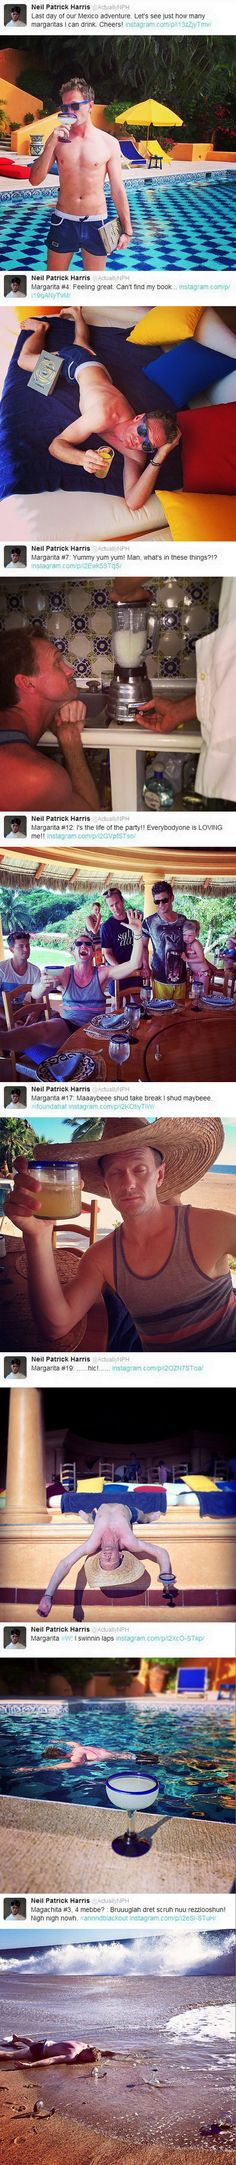 Neil Patrick Harris is such a legend...